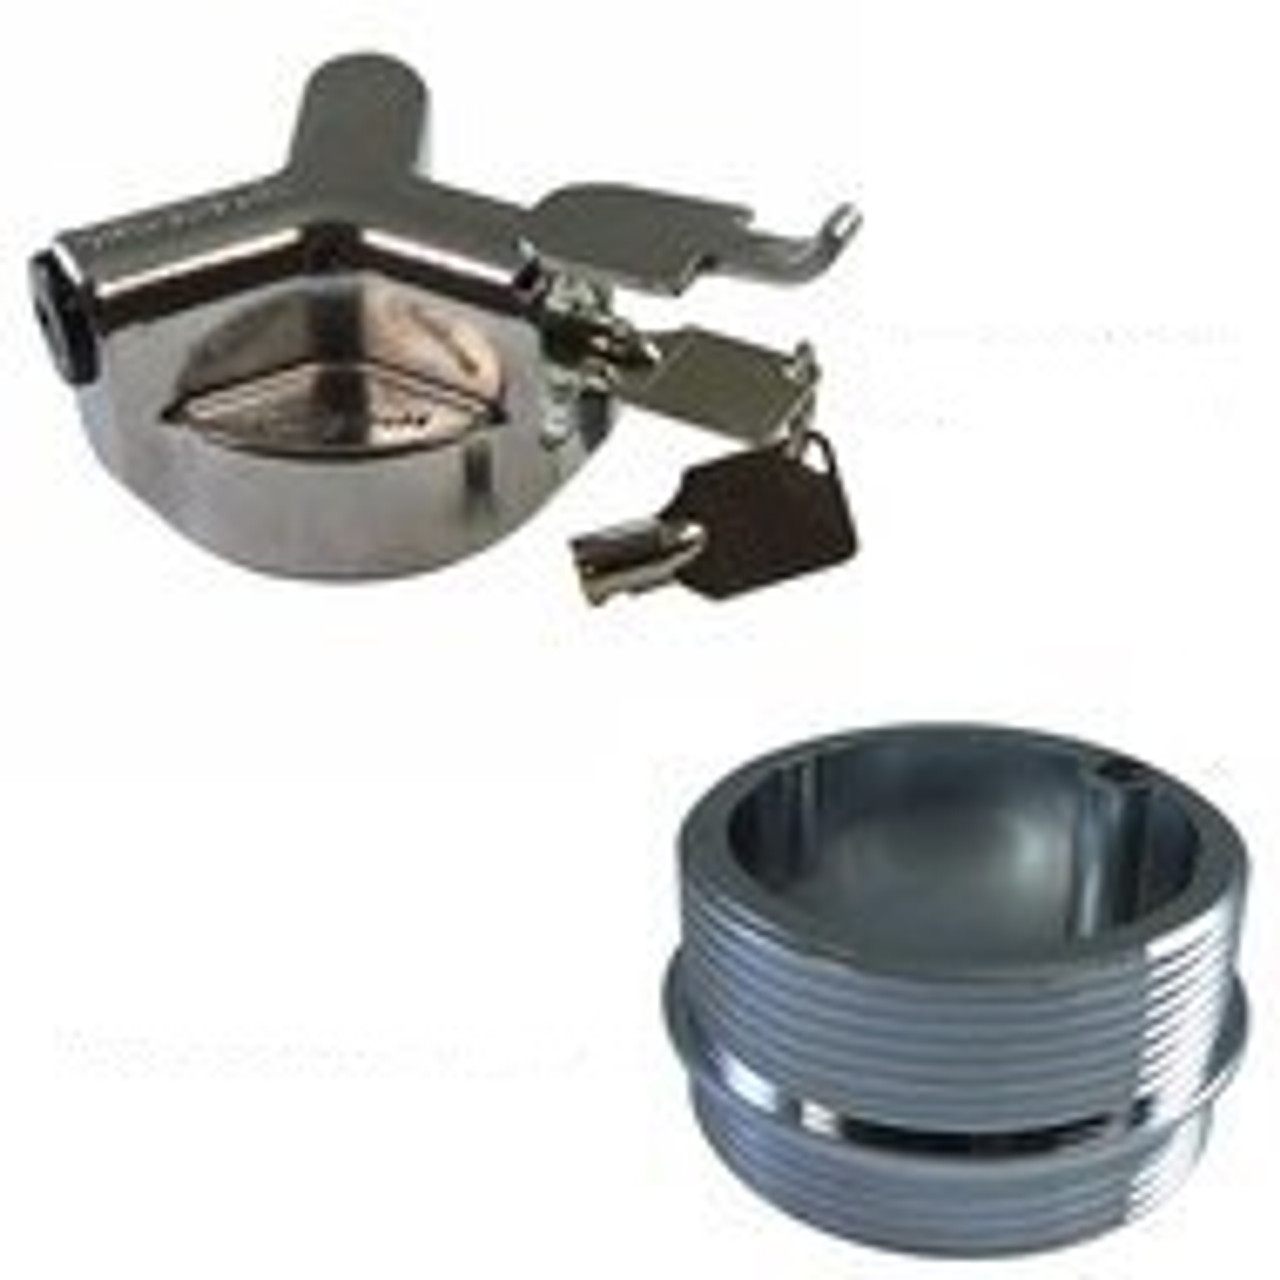 Spin Secure FSS-754 NPT Vented Locking Fuel Cap